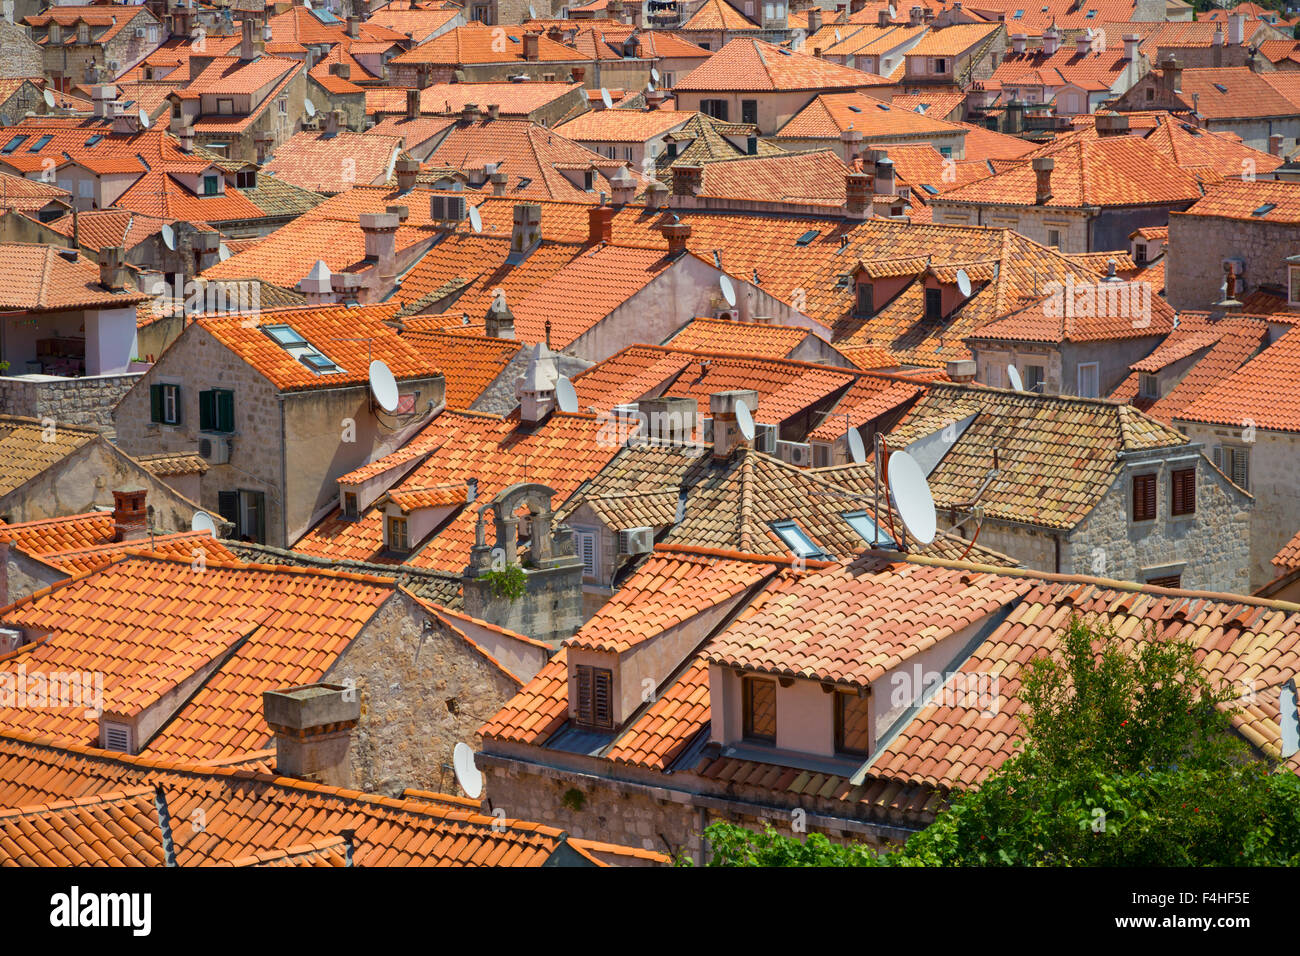 Dubrovnik, Dubrovnik-Neretva County, Croatia.  Rooftops in the old town. - Stock Image